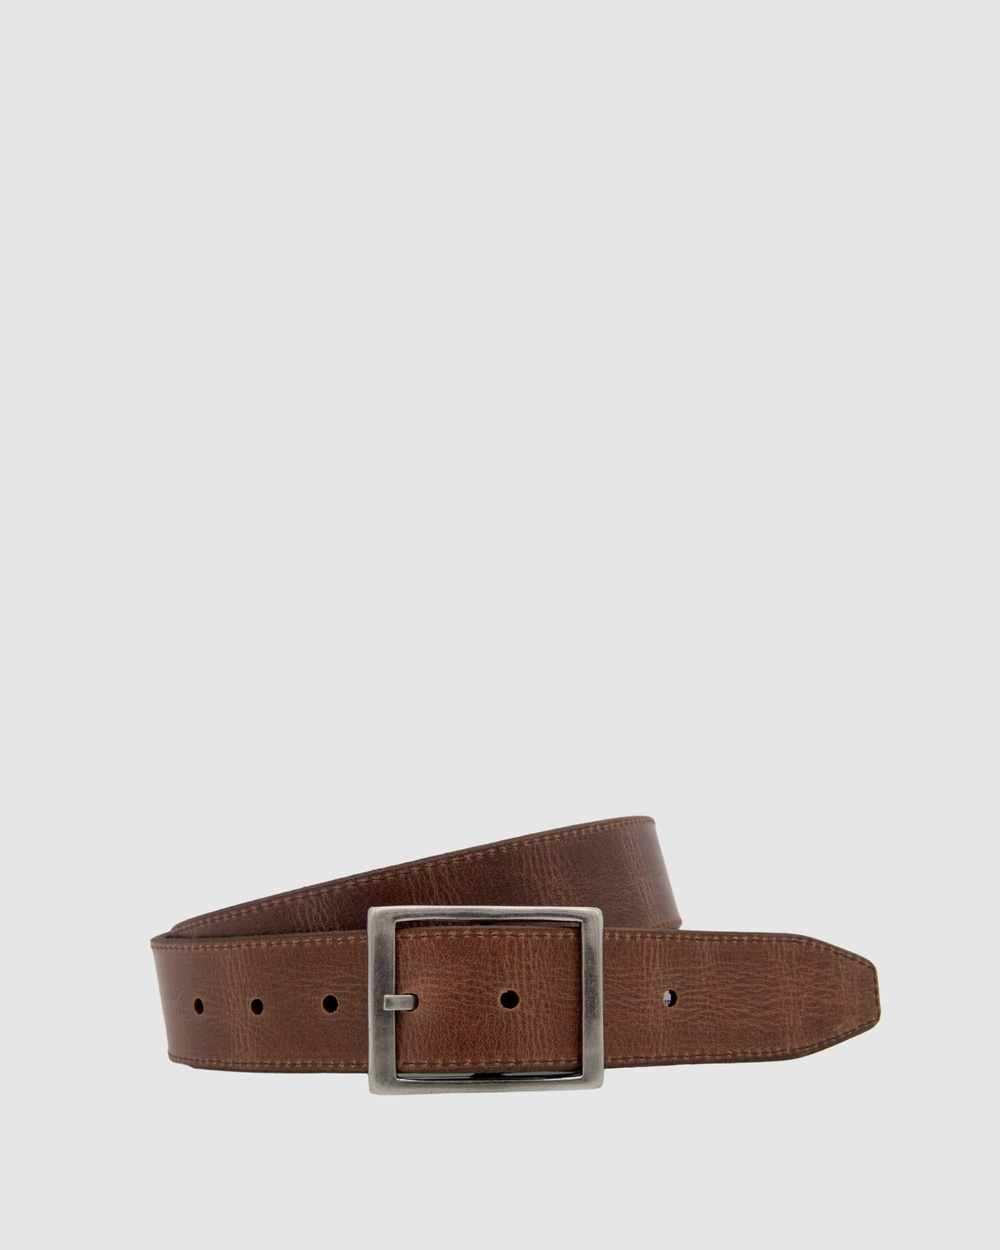 Loop Leather Co Two Face Belts Black/Tan